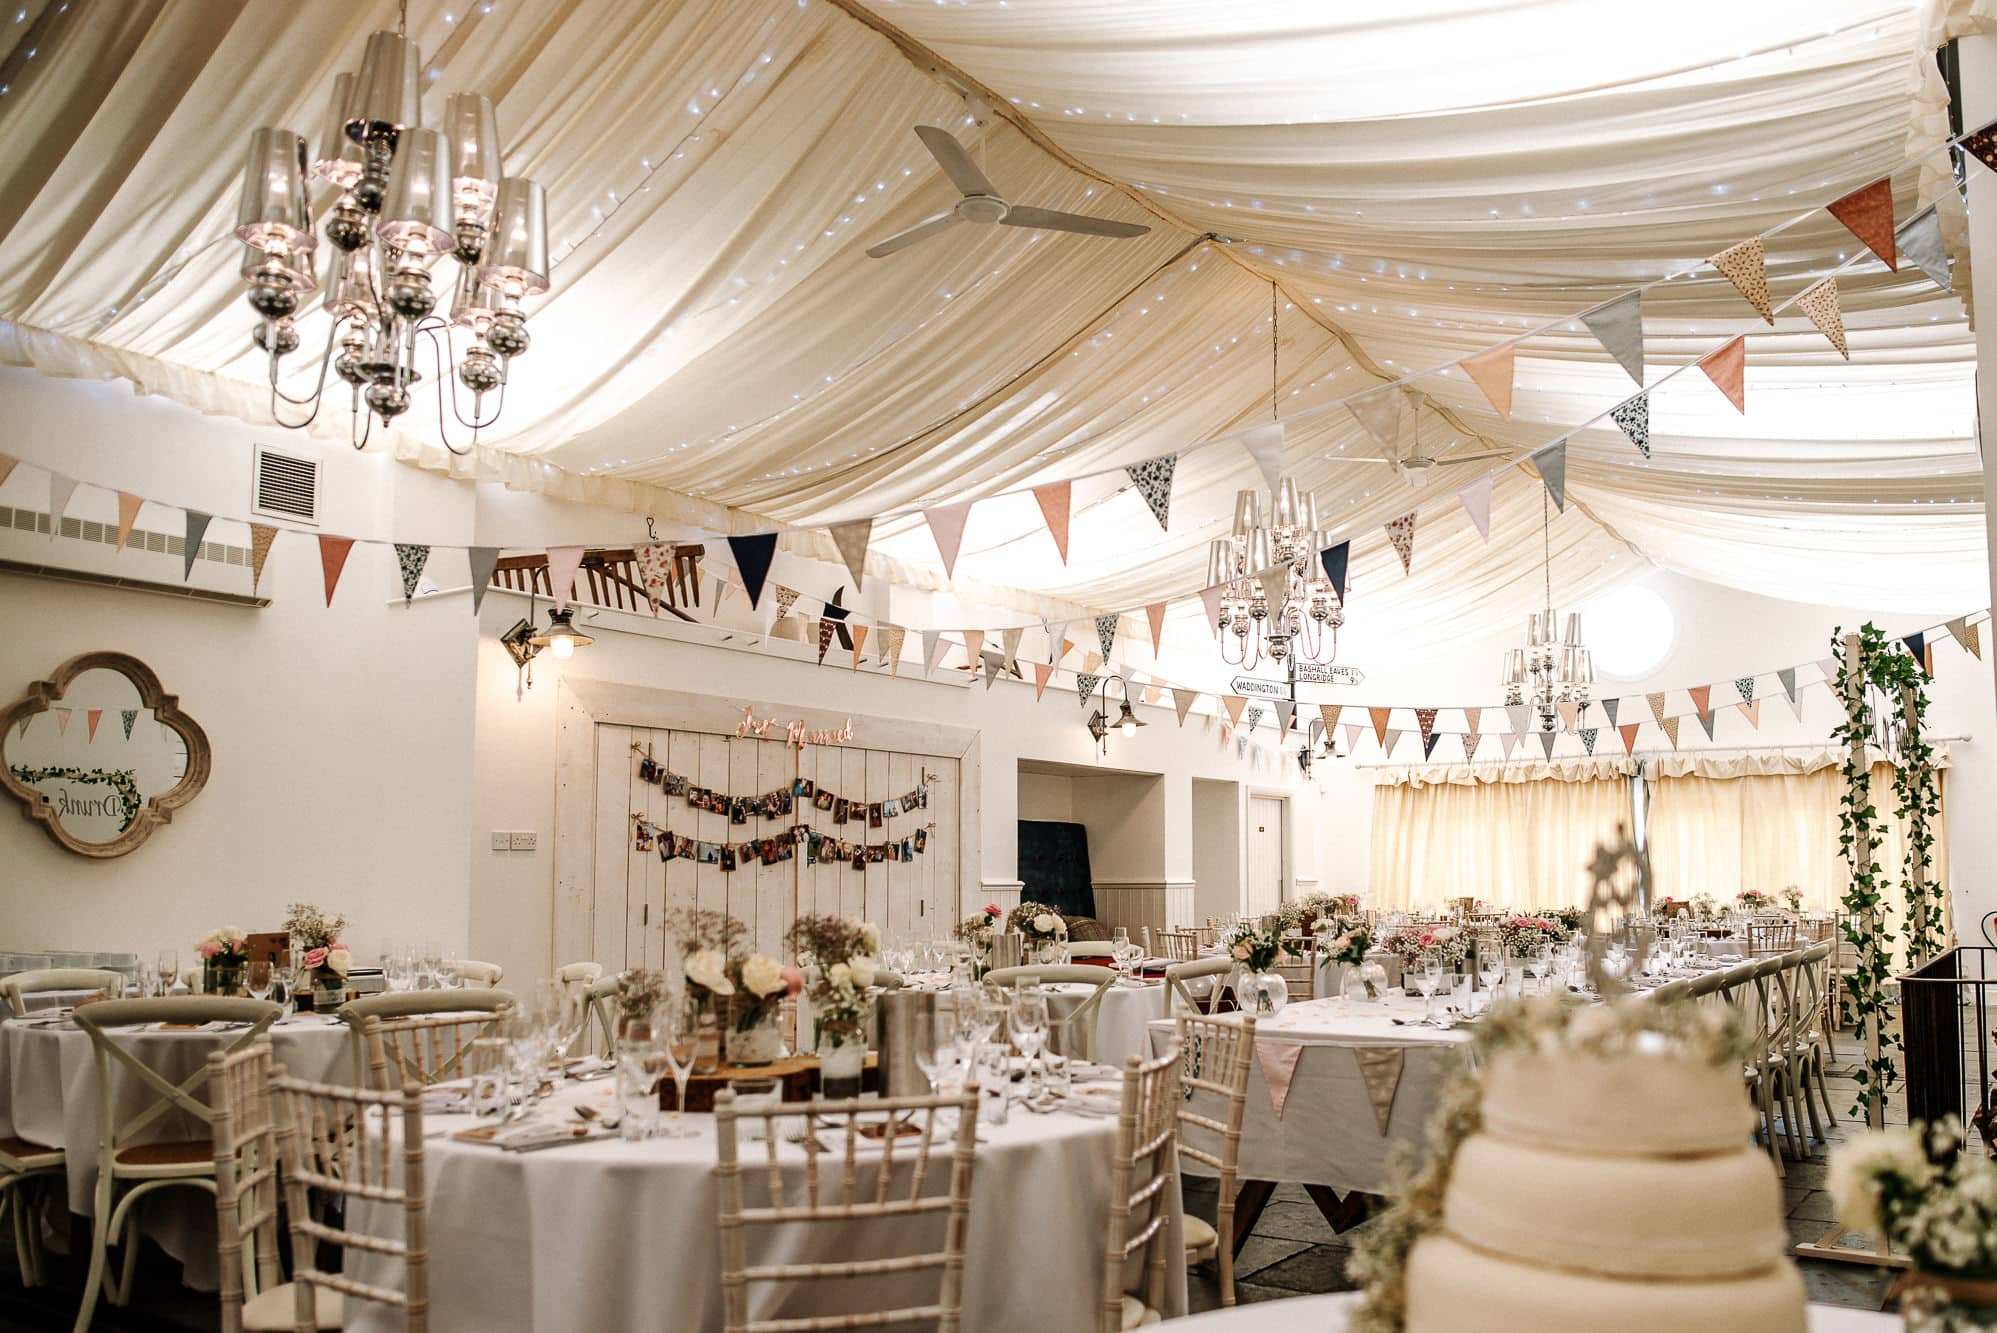 A photo of the whole room at Bashall Barn